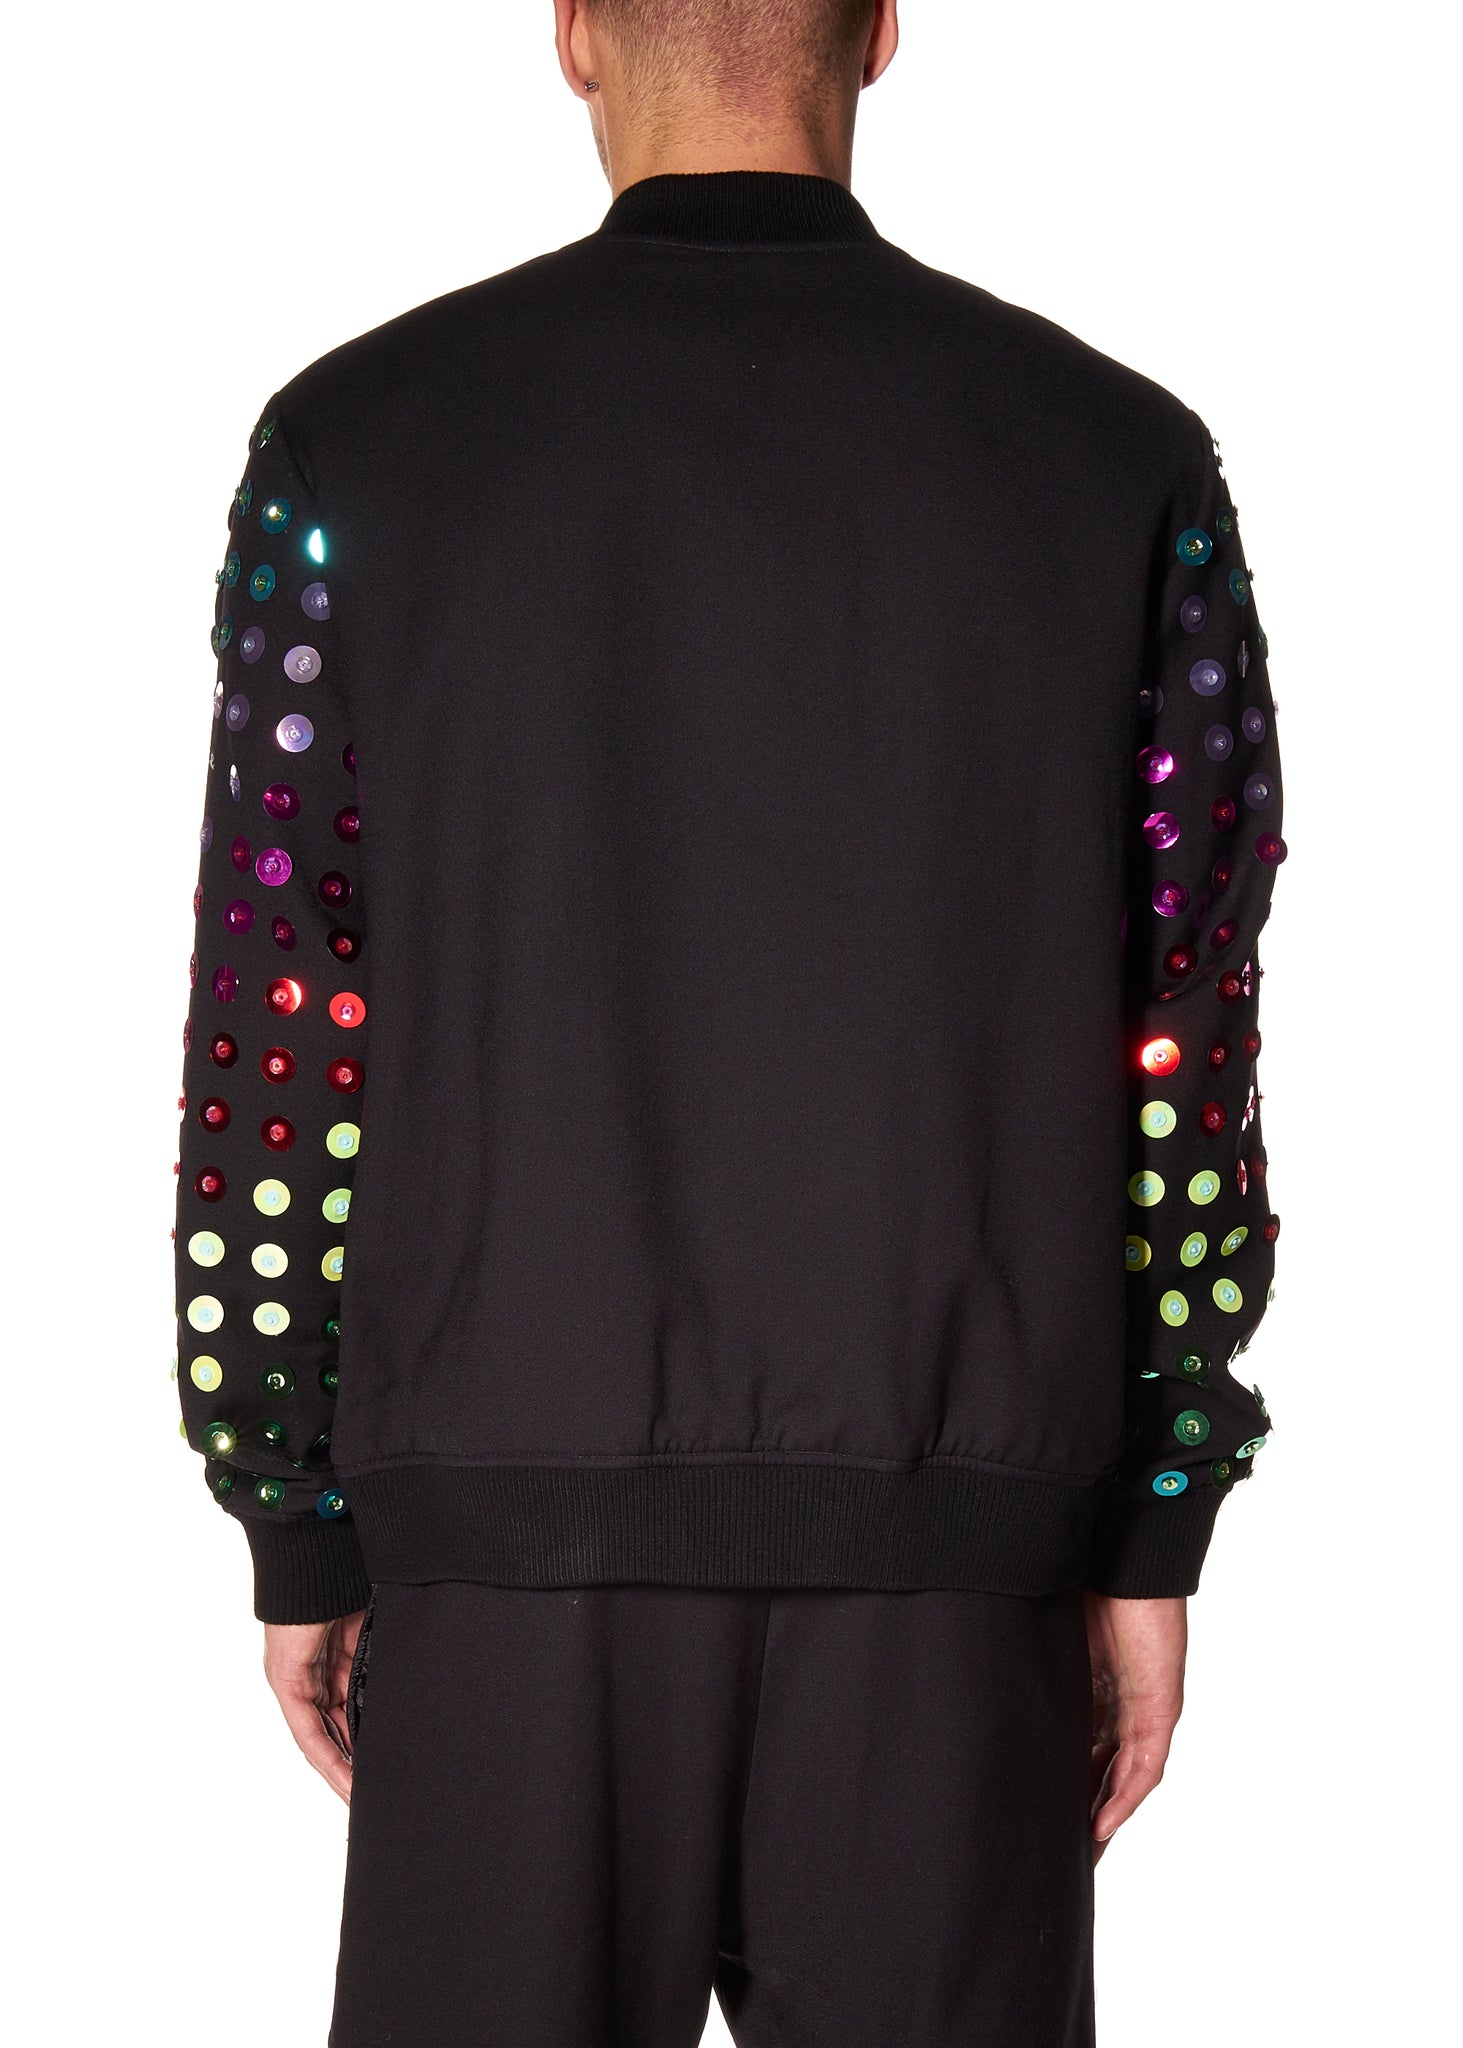 """ELECTRIC AVENUE"" BOMBER JACKET - Men's Jackets & Coats - Libertine"